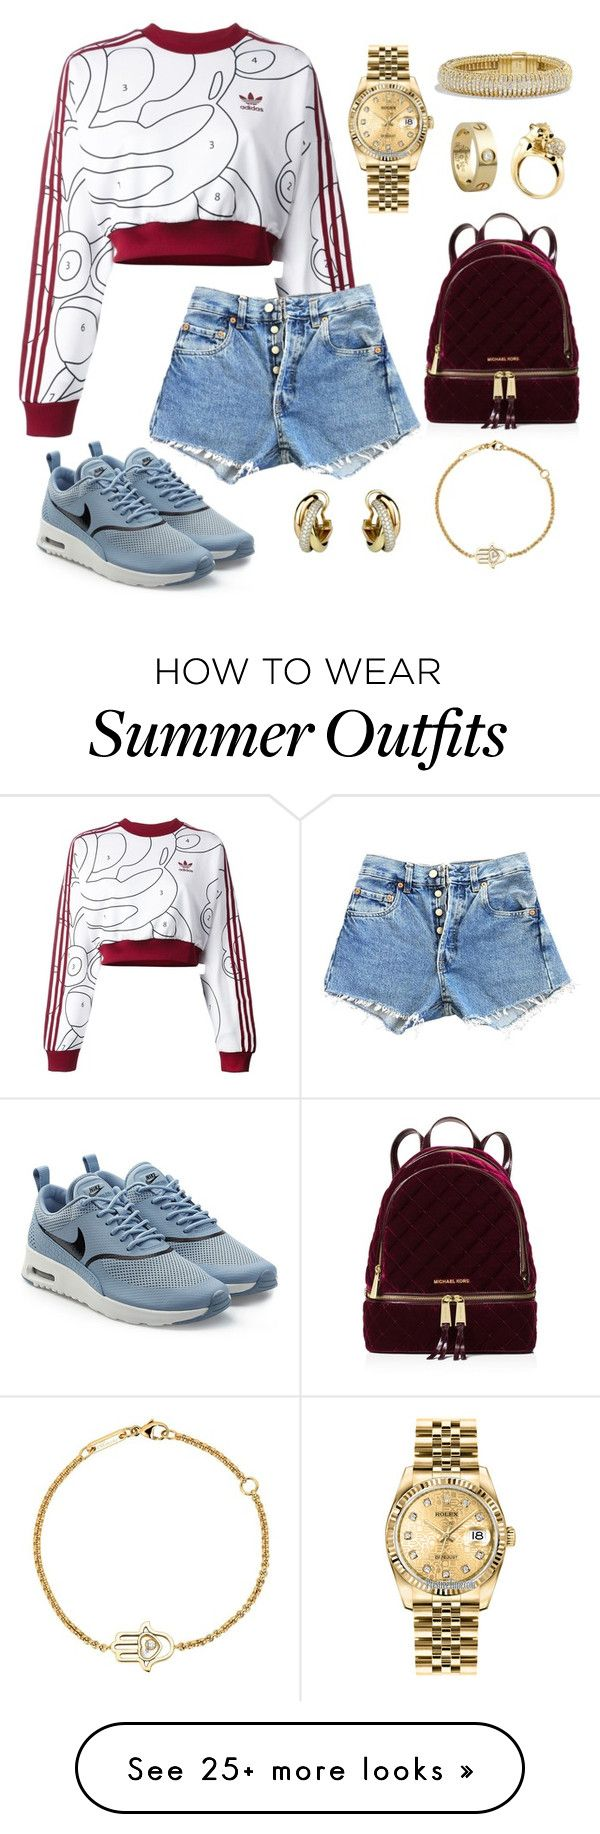 """Summer Outfit"" by fashionbymgda on Polyvore featuring Cartier, adidas..."